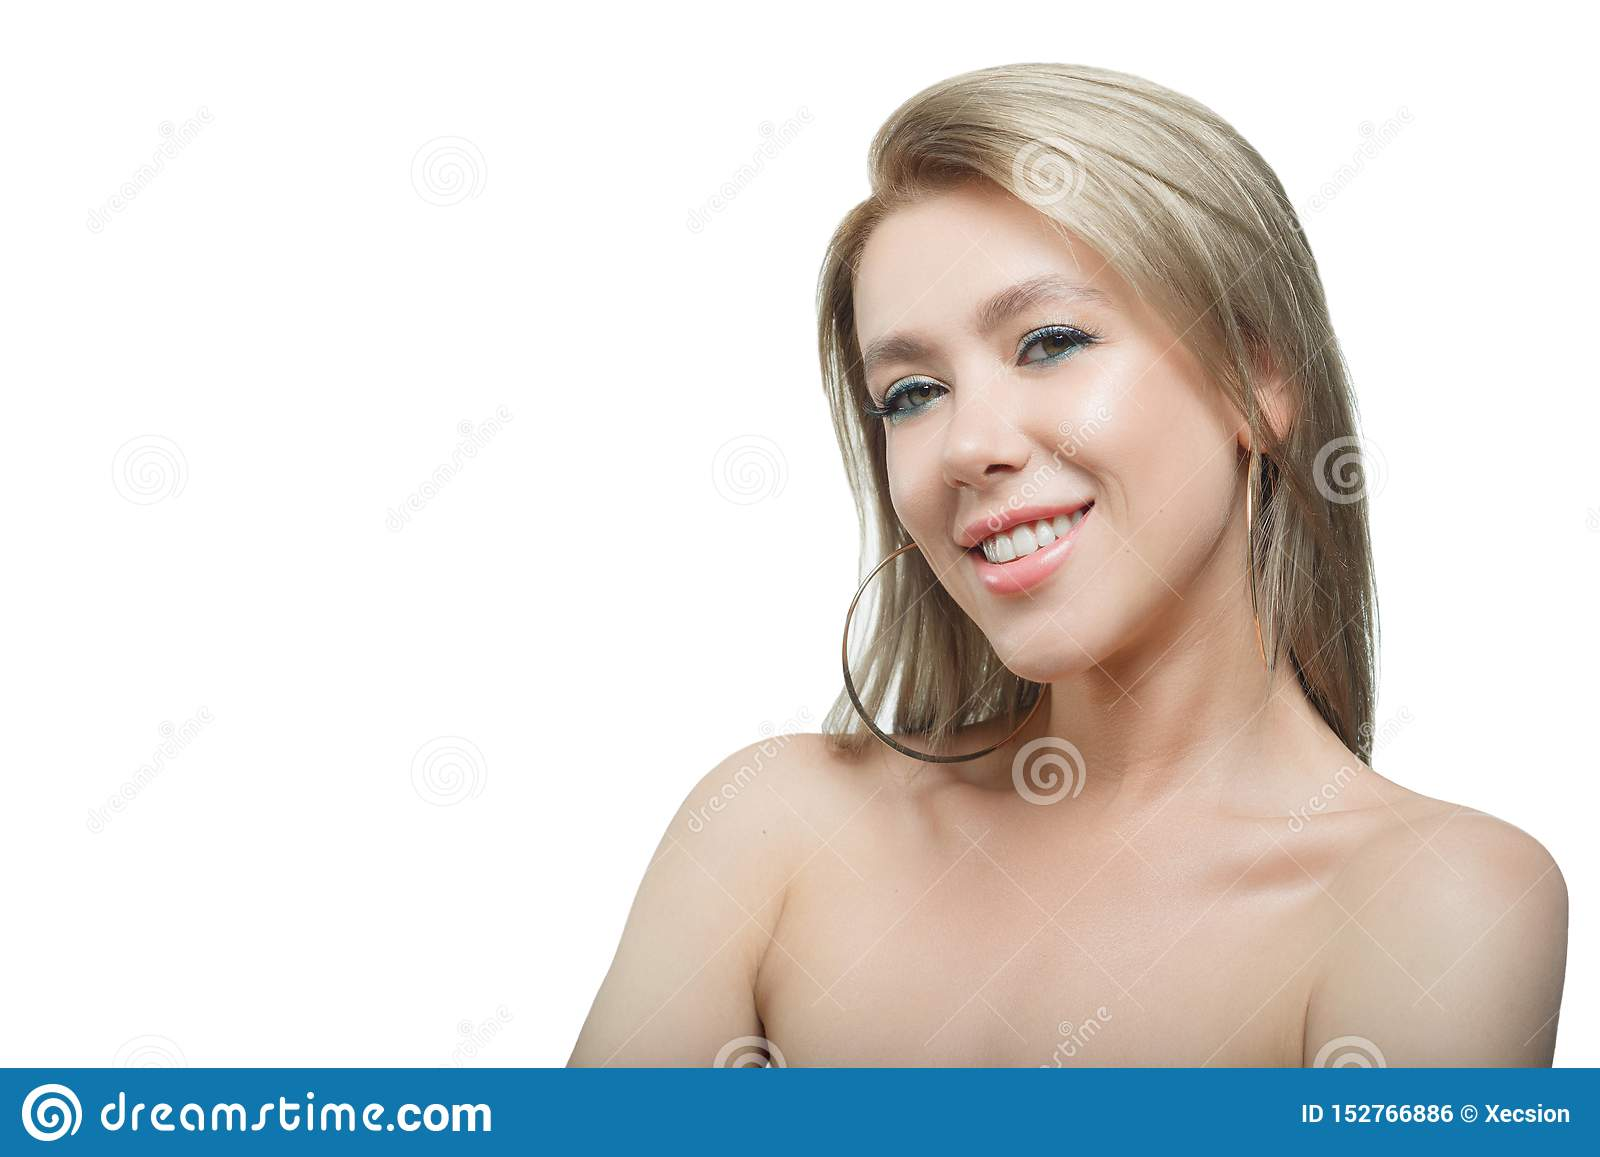 Stylish beautiful girl with flowing hair looking at camera with joyful happy facial expression